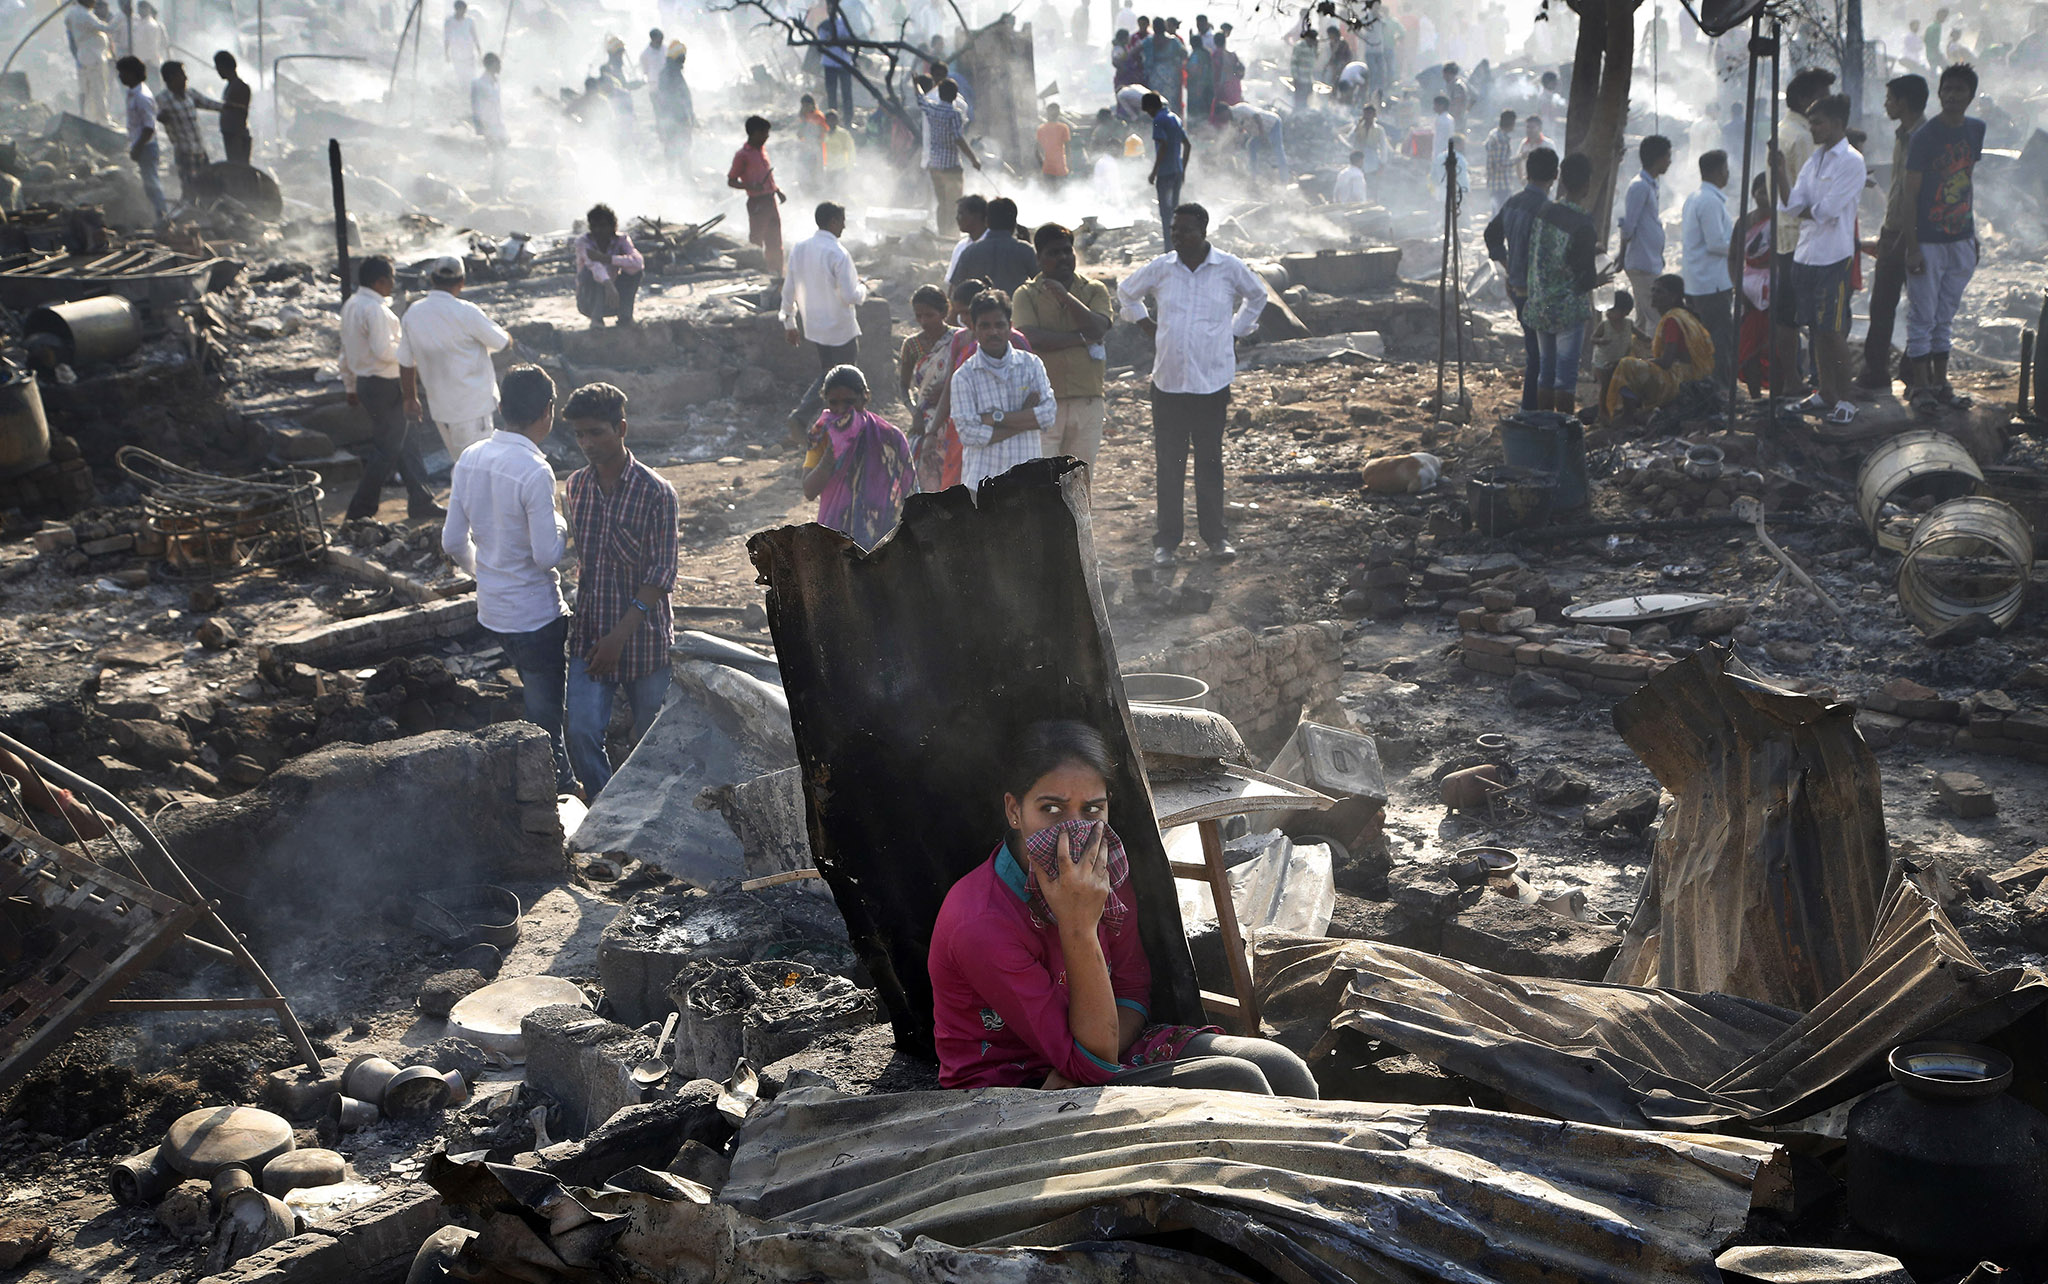 People look at the devastation caused by fire that broke out at slums in Kadivali area of Mumbai, India. Hundreds of homes were reportedly destroyed as fire tenders laboured to reach the source in the heavily congested area.